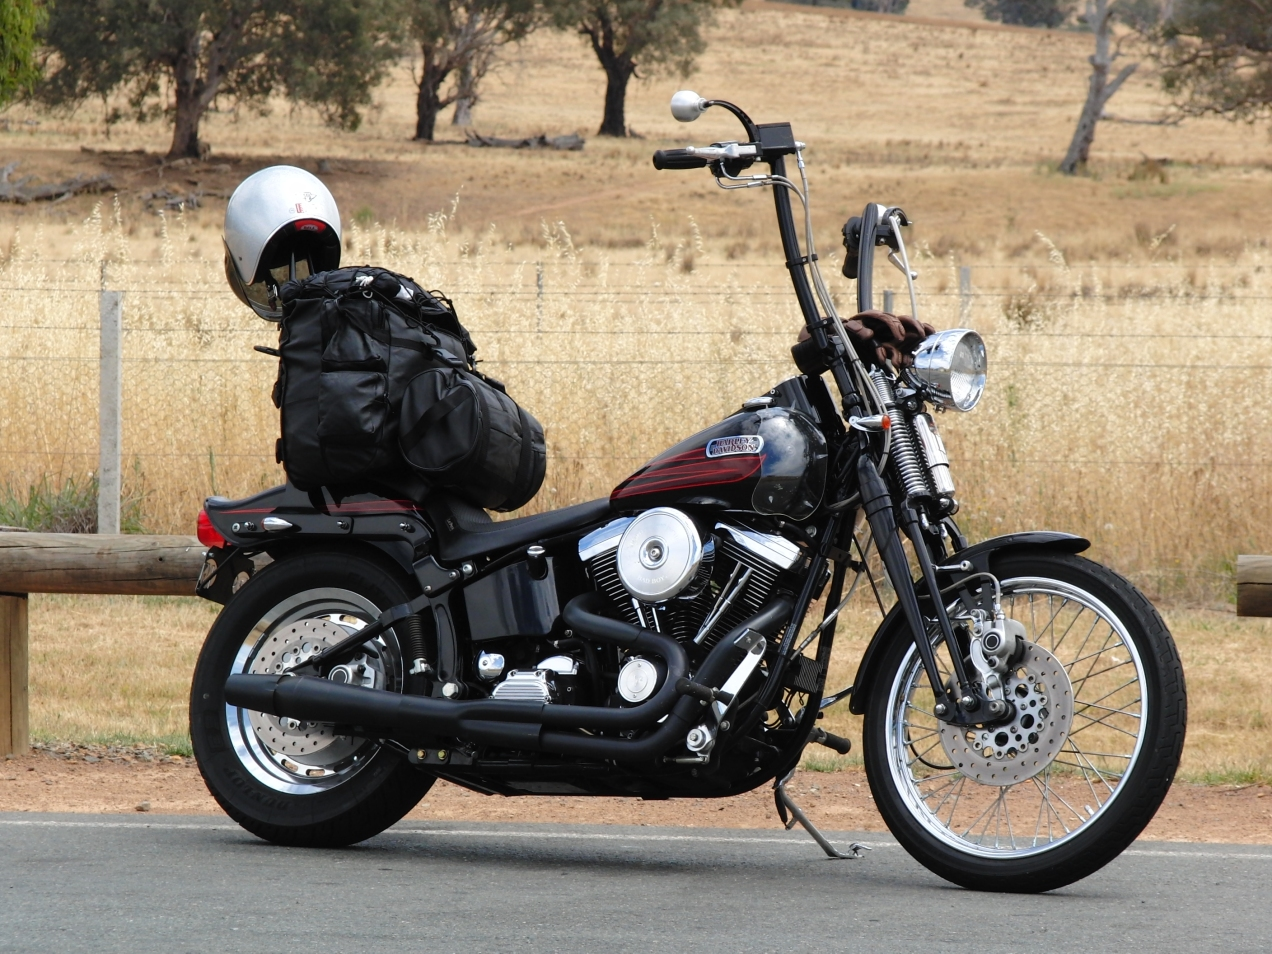 harley-davidson-softail-springer-1995-bad-boy-FXSTSB-evolution-1340-thunderheader-carlini-evil-apehangers-cycle-vision-tall-sissybar-joker-machine-mirrors-psalmistice_CIMG2054